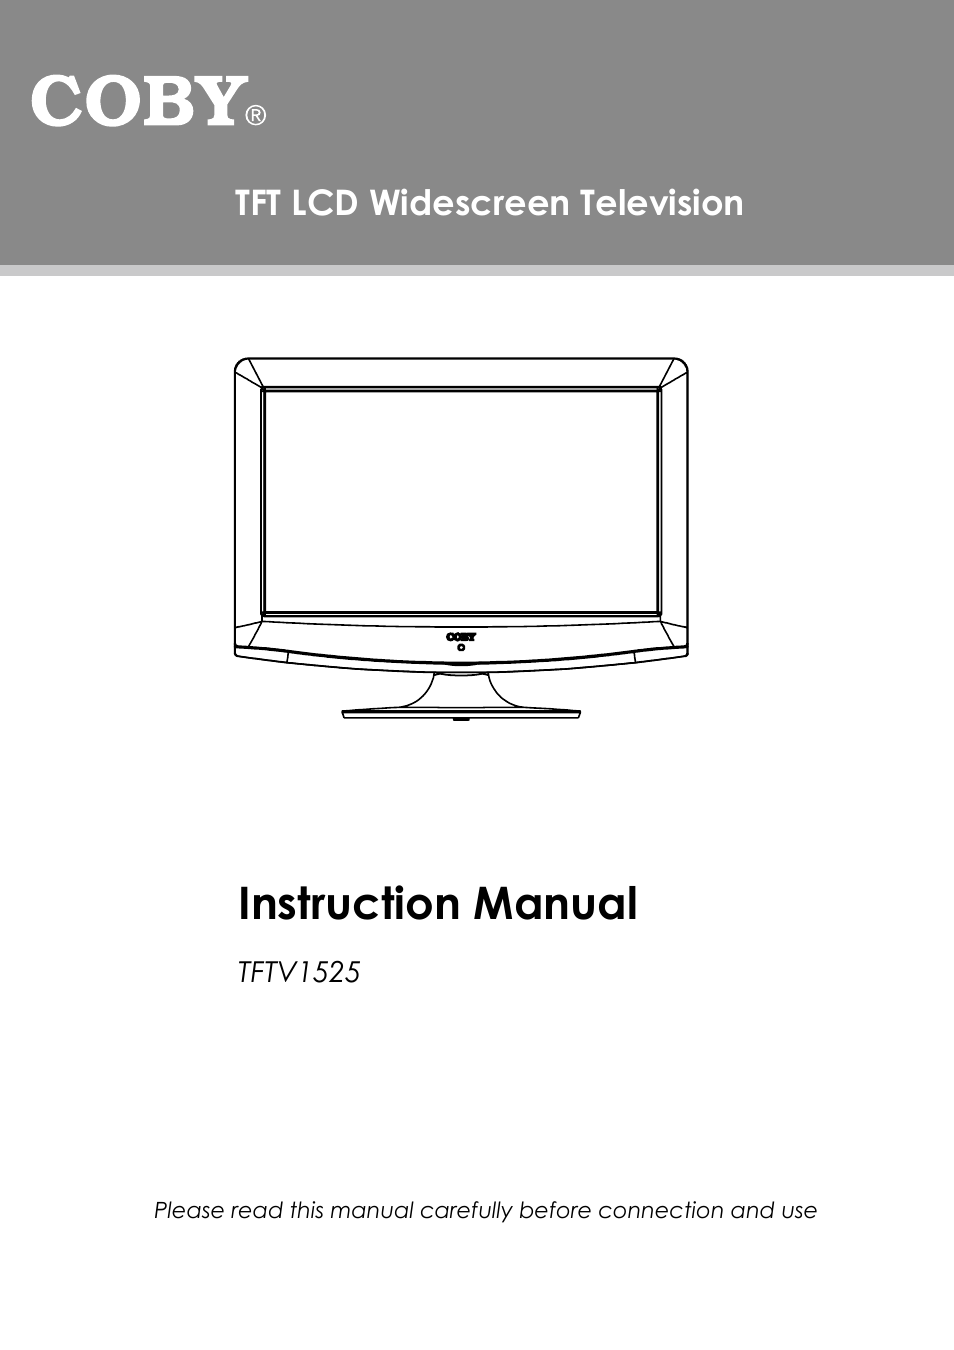 coby tftv1525 user manual 21 pages rh manualsdir com coby cxr190-1g user manual coby csbt-322 user manual